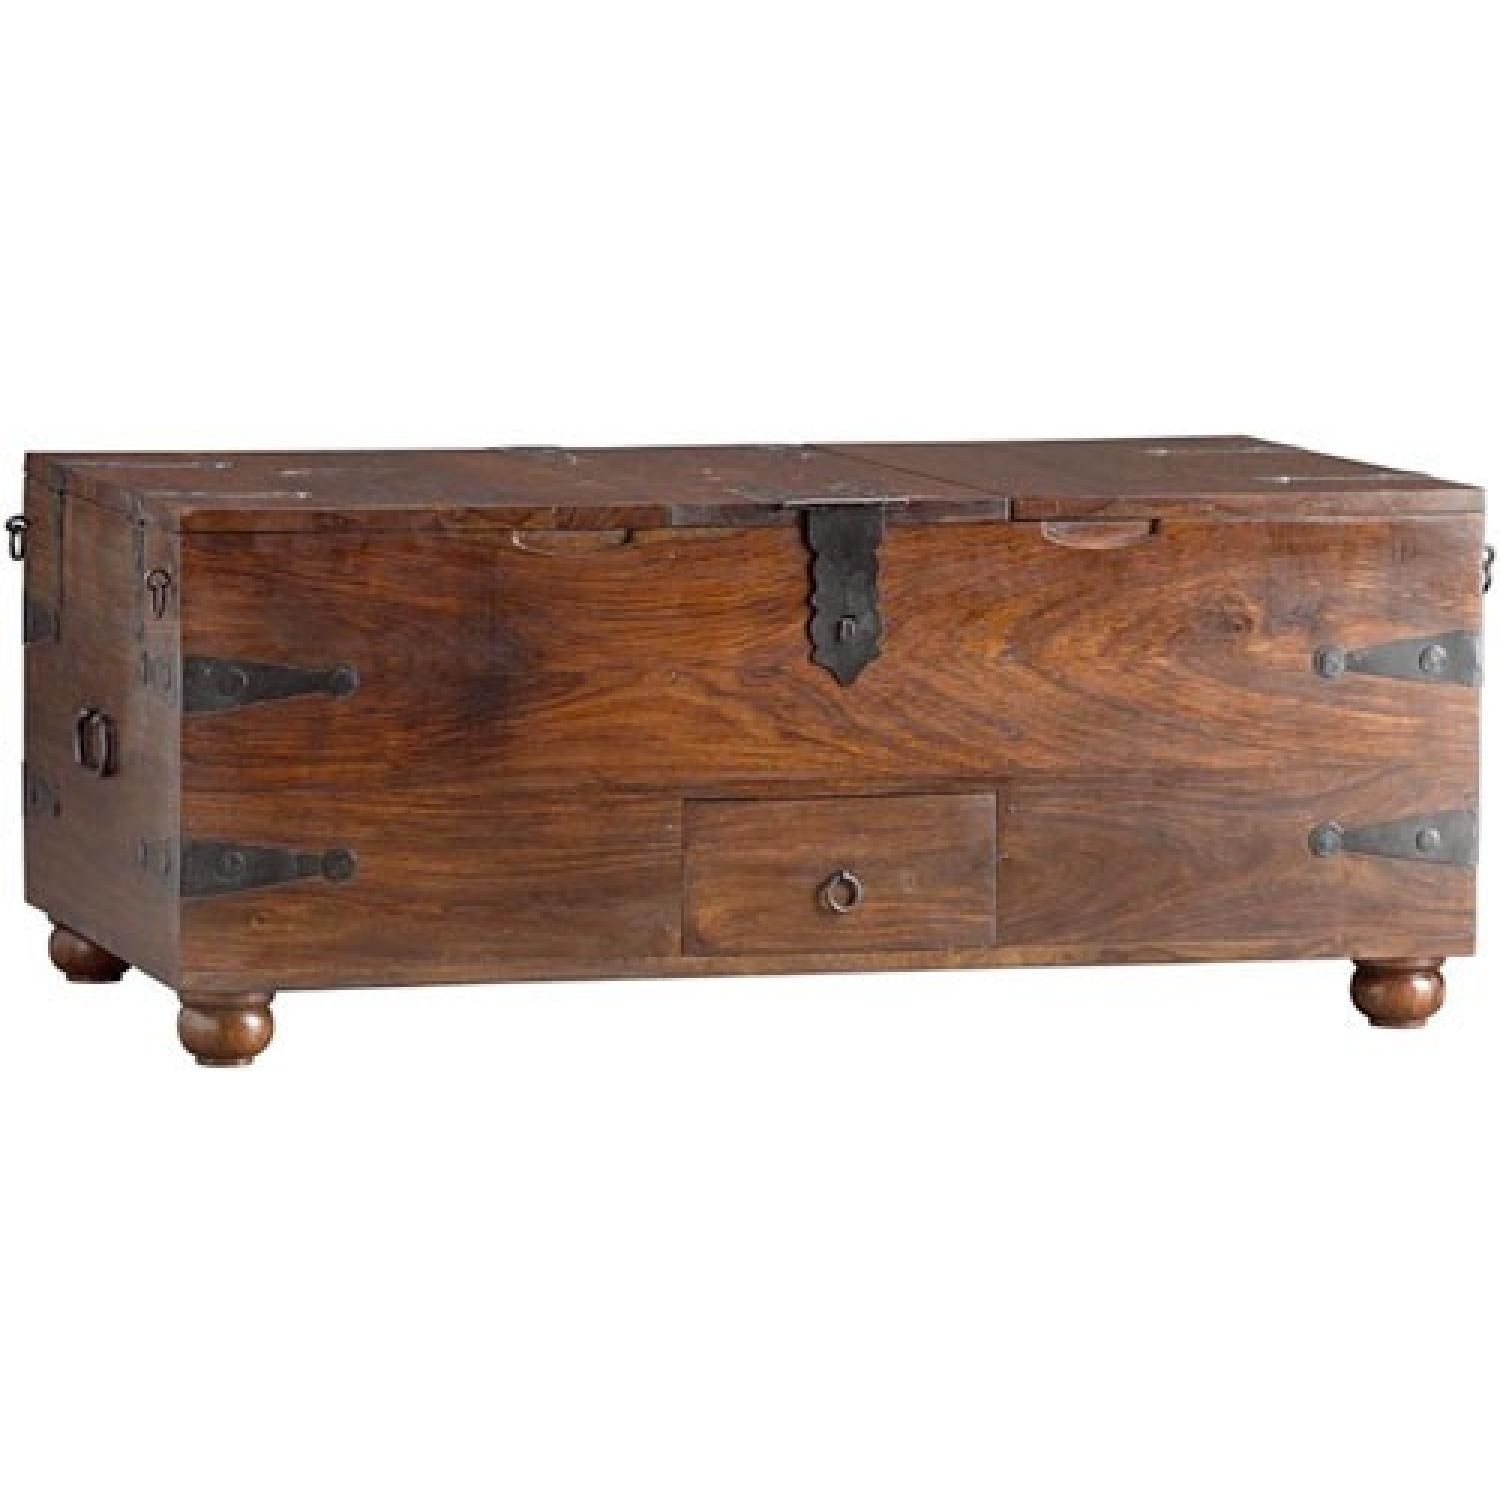 This is a Crate & Barrel Taka Trunk Coffee Table for $200 00 This